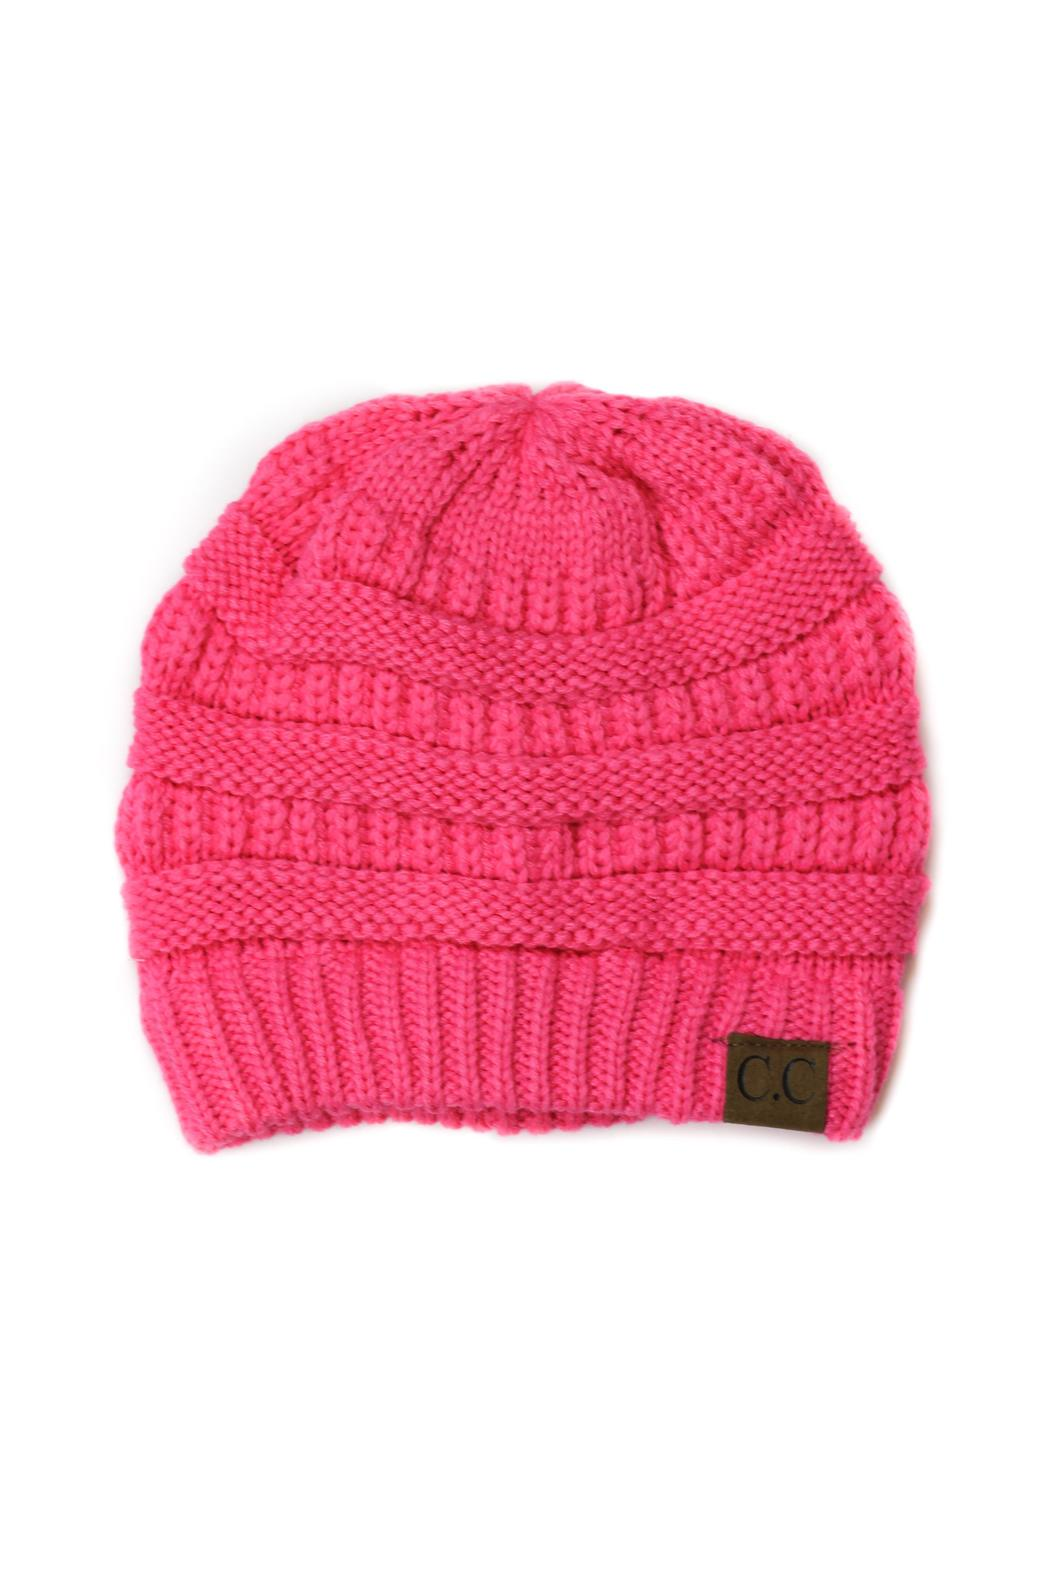 7f9ef8bc24e86 C.C Beanie Pink Beanie from Minneapolis by StyleTrolley